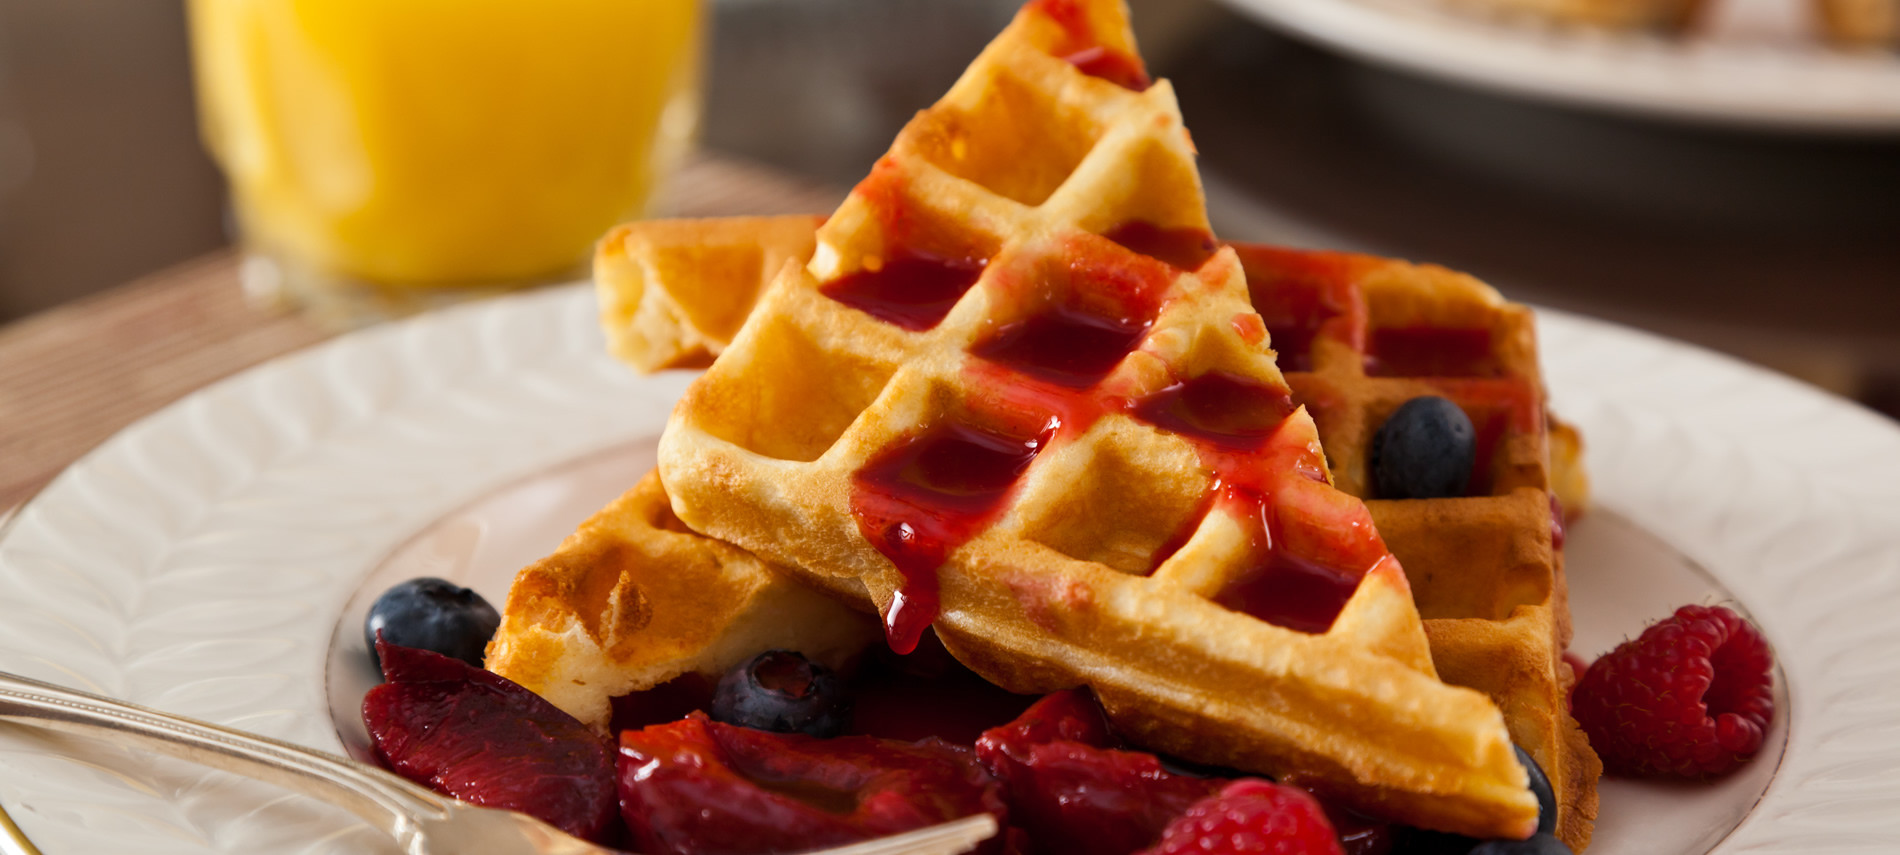 Plate with sliced waffle with Red Raspberries and BLue Berries